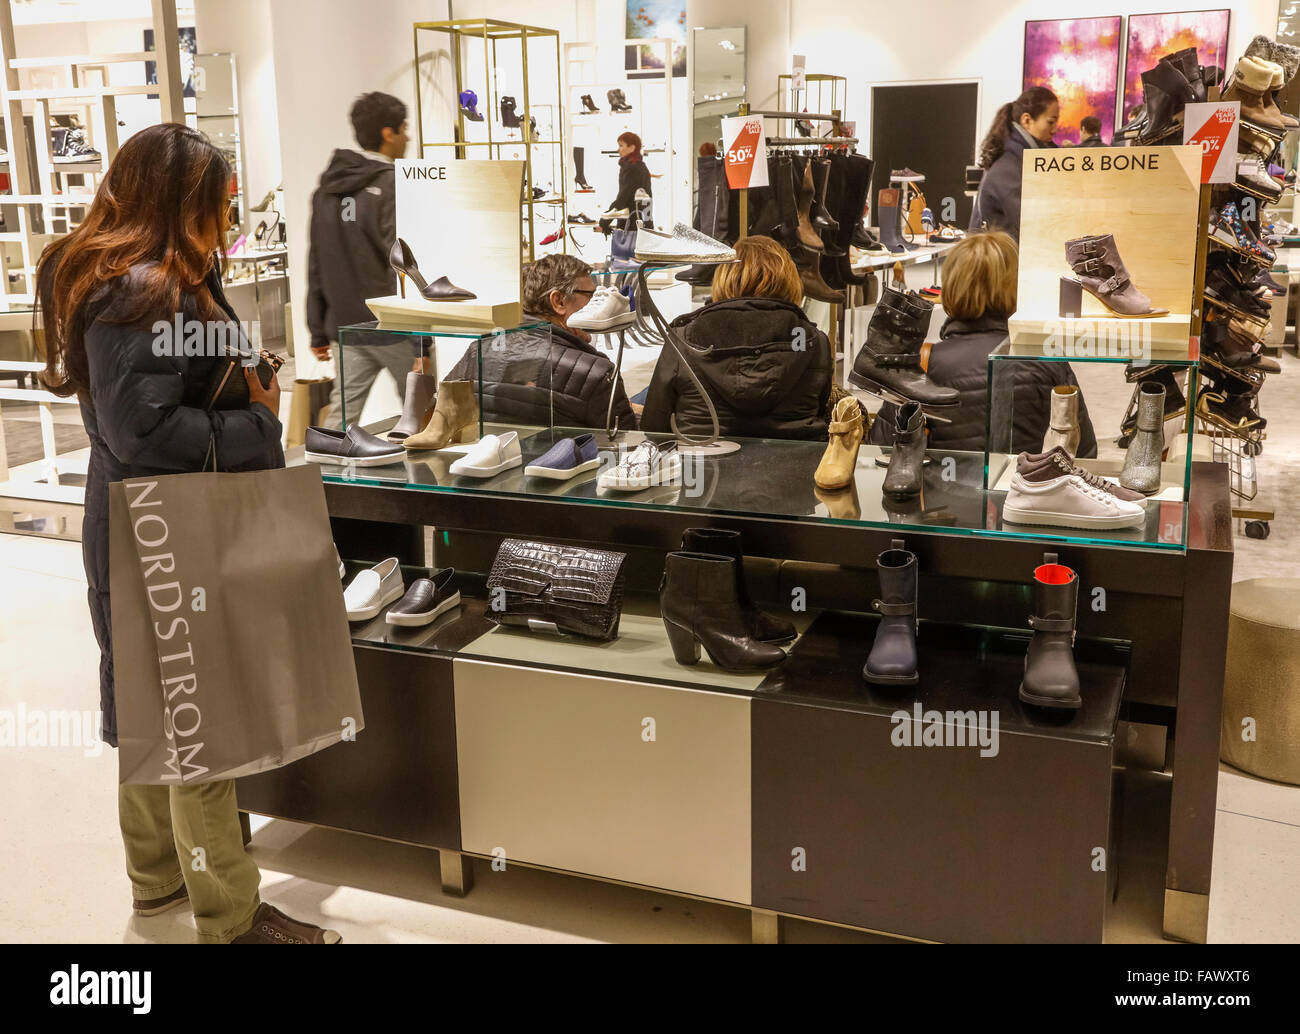 Nordstrom Department Store Stock Photos & Nordstrom Department Store ...